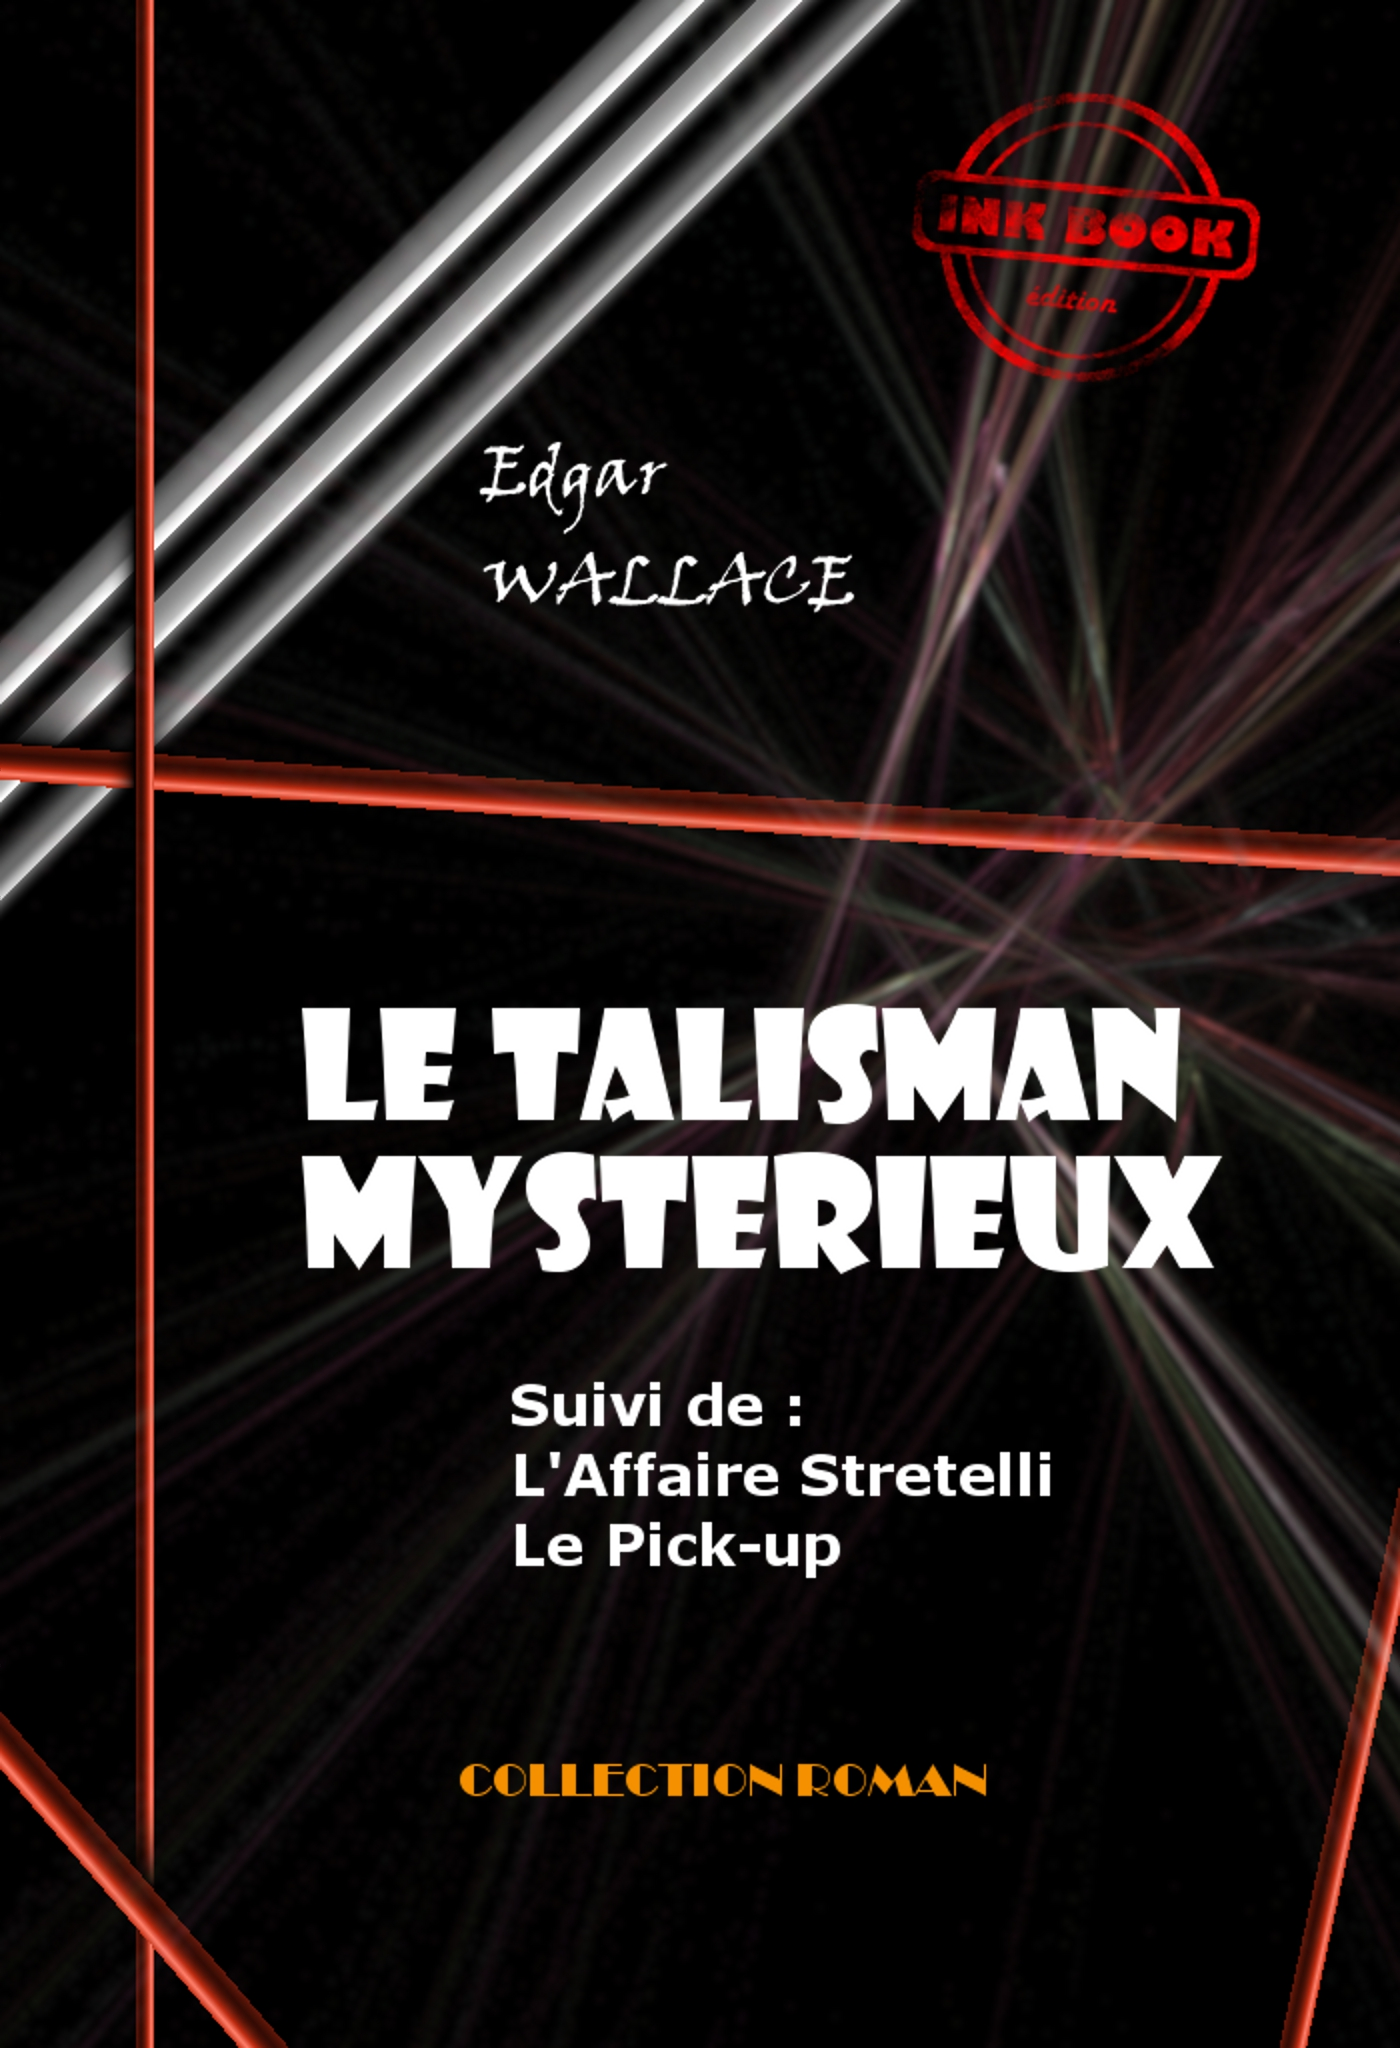 Le Talisman mystérieux - L'Affaire Stretelli - Le Pick-up